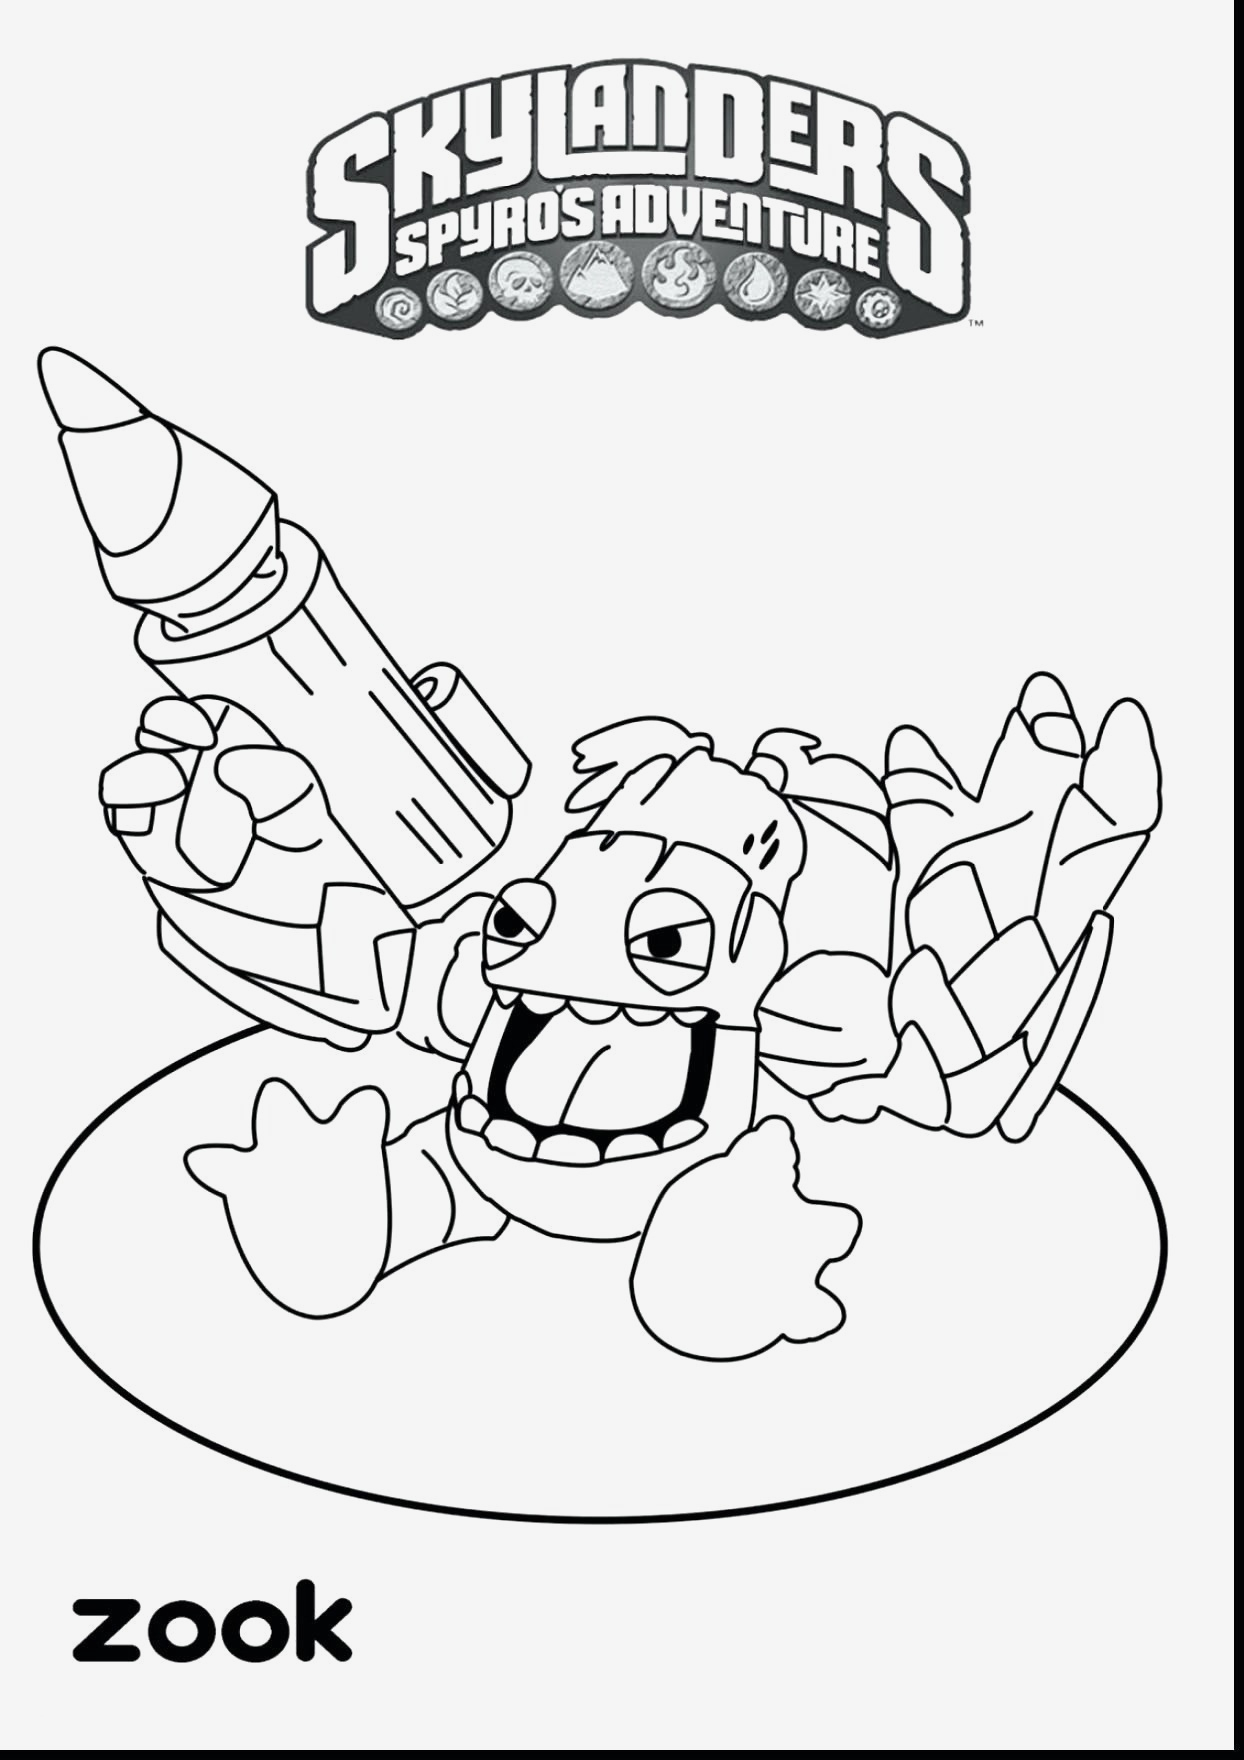 bmw coloring pages Download-Cupcake Coloring Pages Free Printable 15 Luxury Cupcake Coloring Pages Cupcake Coloring Pages Best Easy 19-f